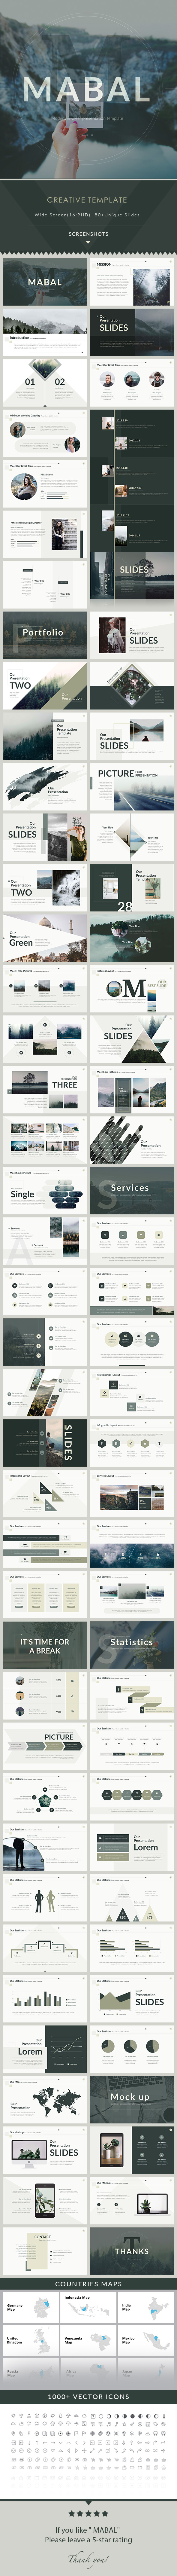 Mabal - PowerPoint Presentation Template - PowerPoint Templates Presentation Templates